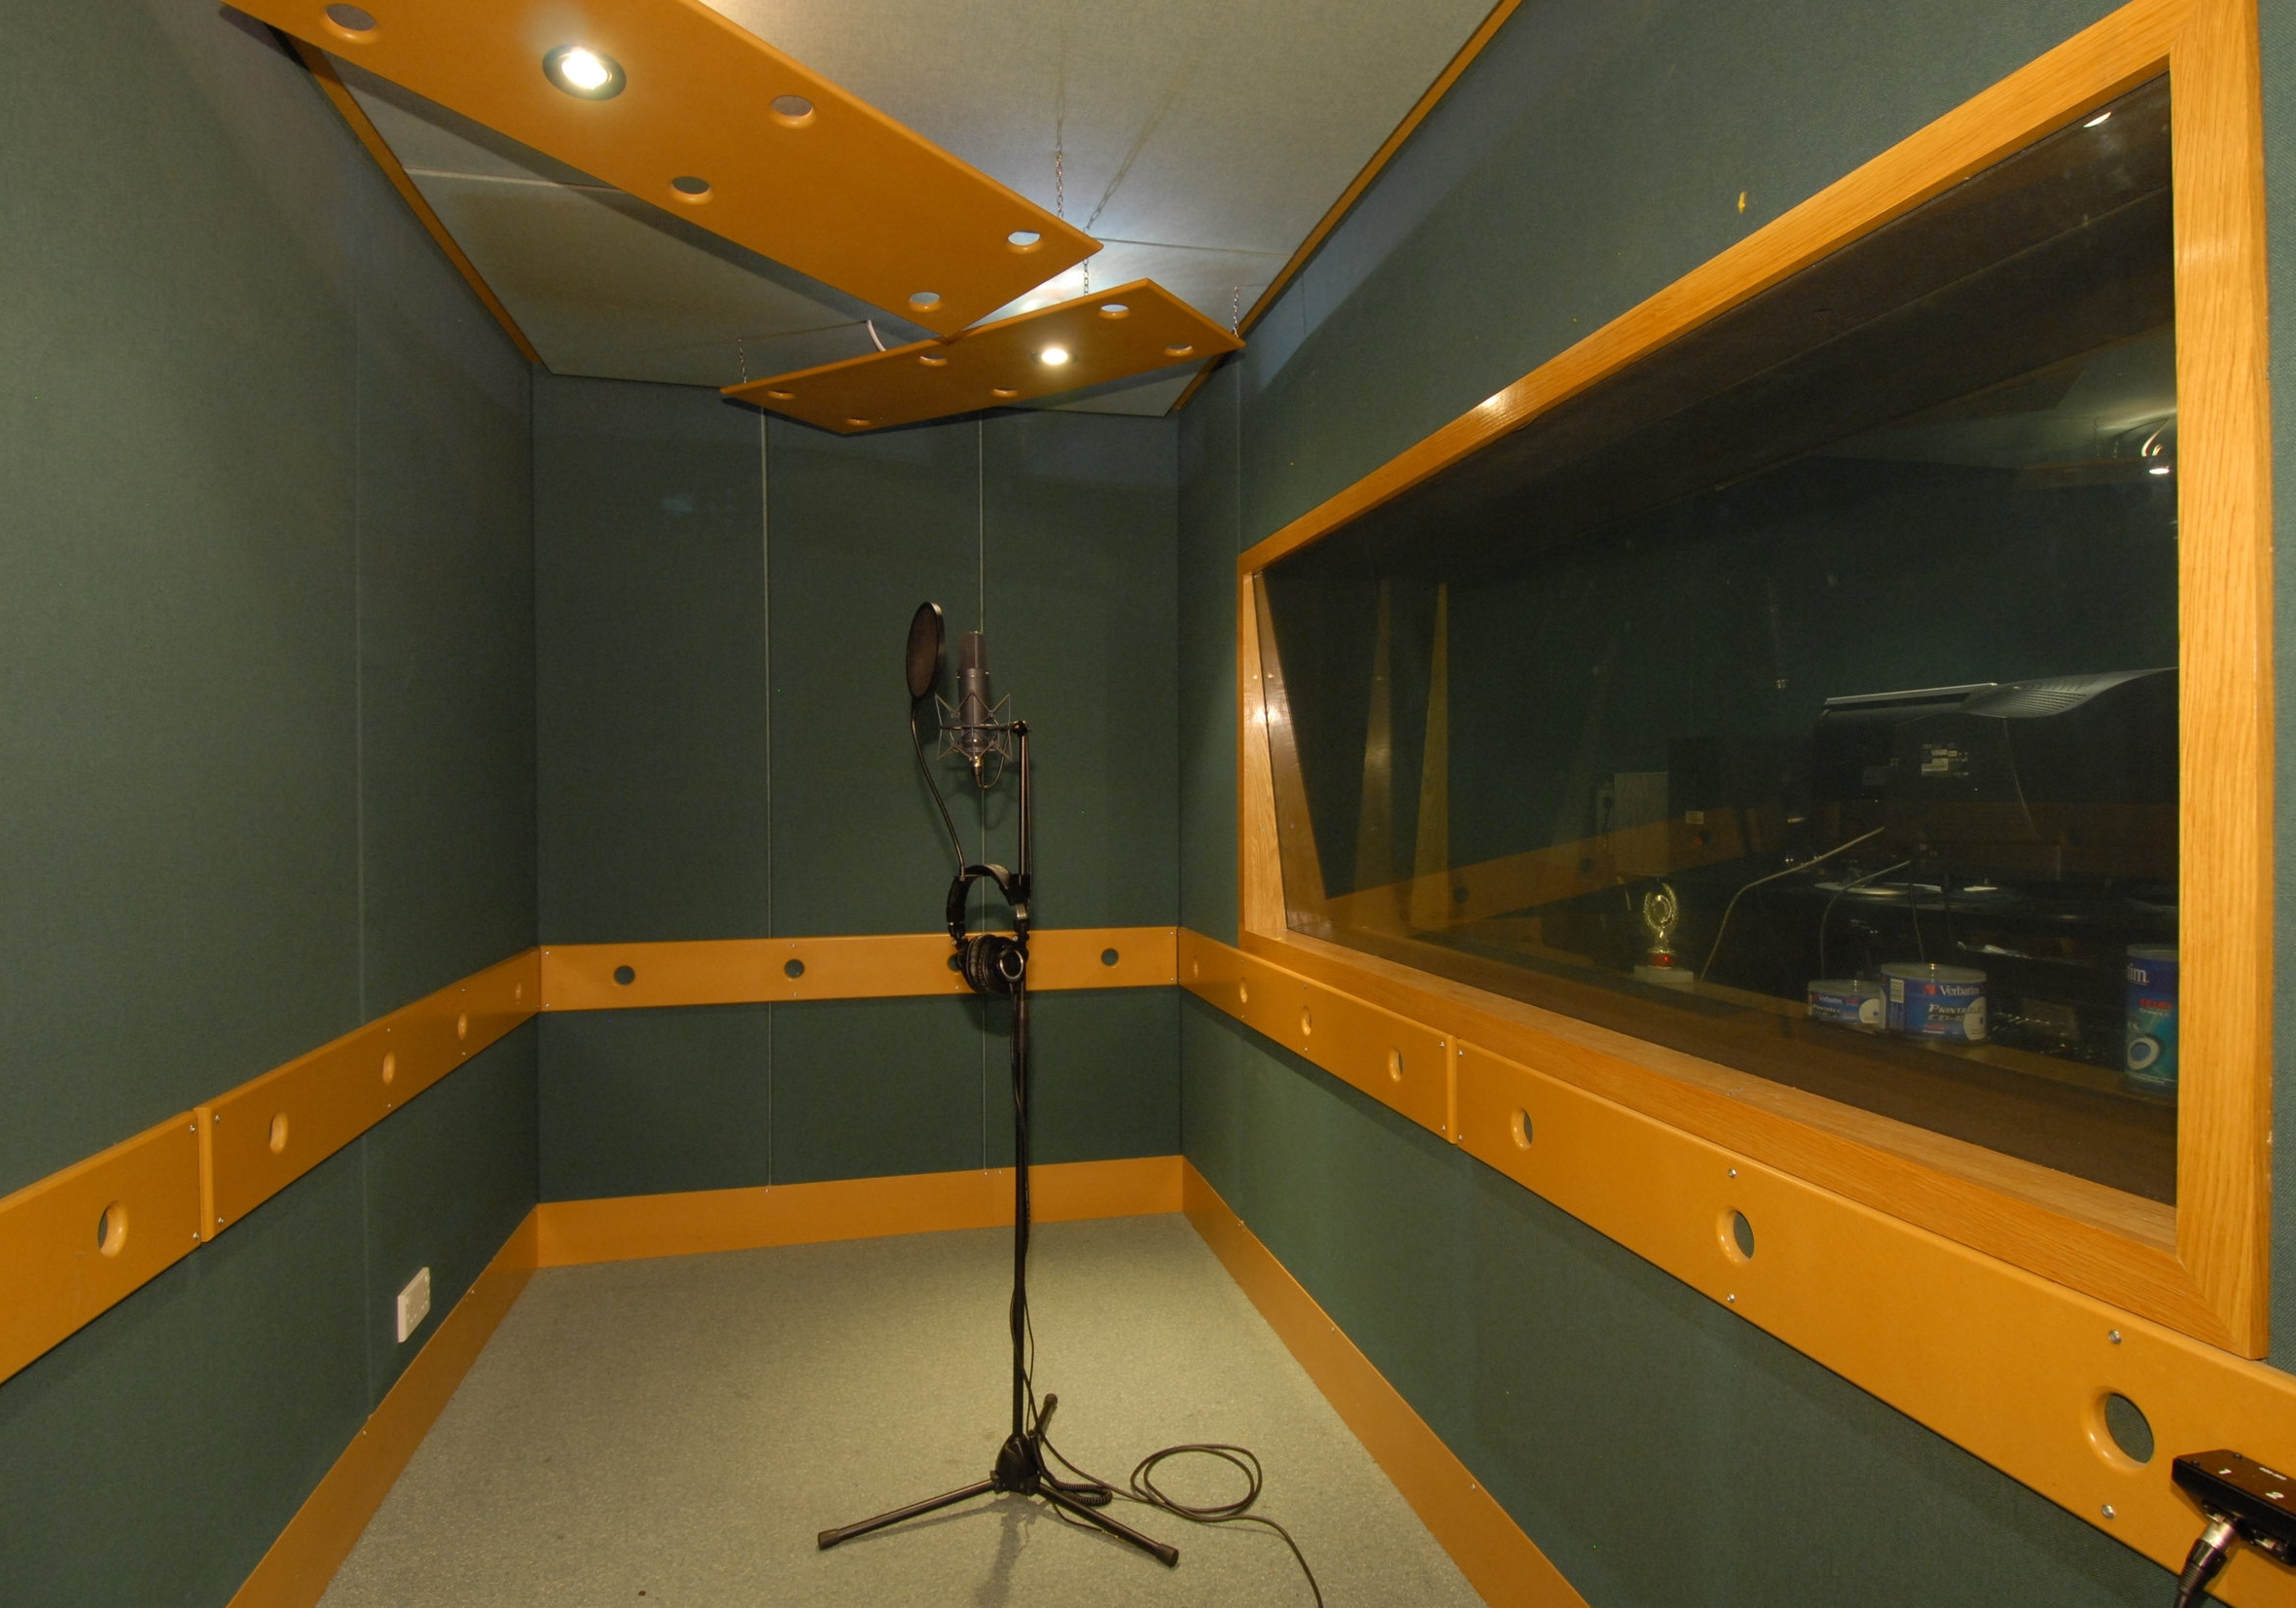 Studio 2 - Designed and built by KFA, production Suite 2 is an ideal mixing, programming, recording and production space. Includes a separate booth large enough for a drum kit. It is air conditioned (silent), sound proofed, tuned to 100hz, has quadruple glazing and is independently alarmed.Measurements: 3.6m wide by 4.8m long. Vocal booth: 3.6m wide by 1.8m long.